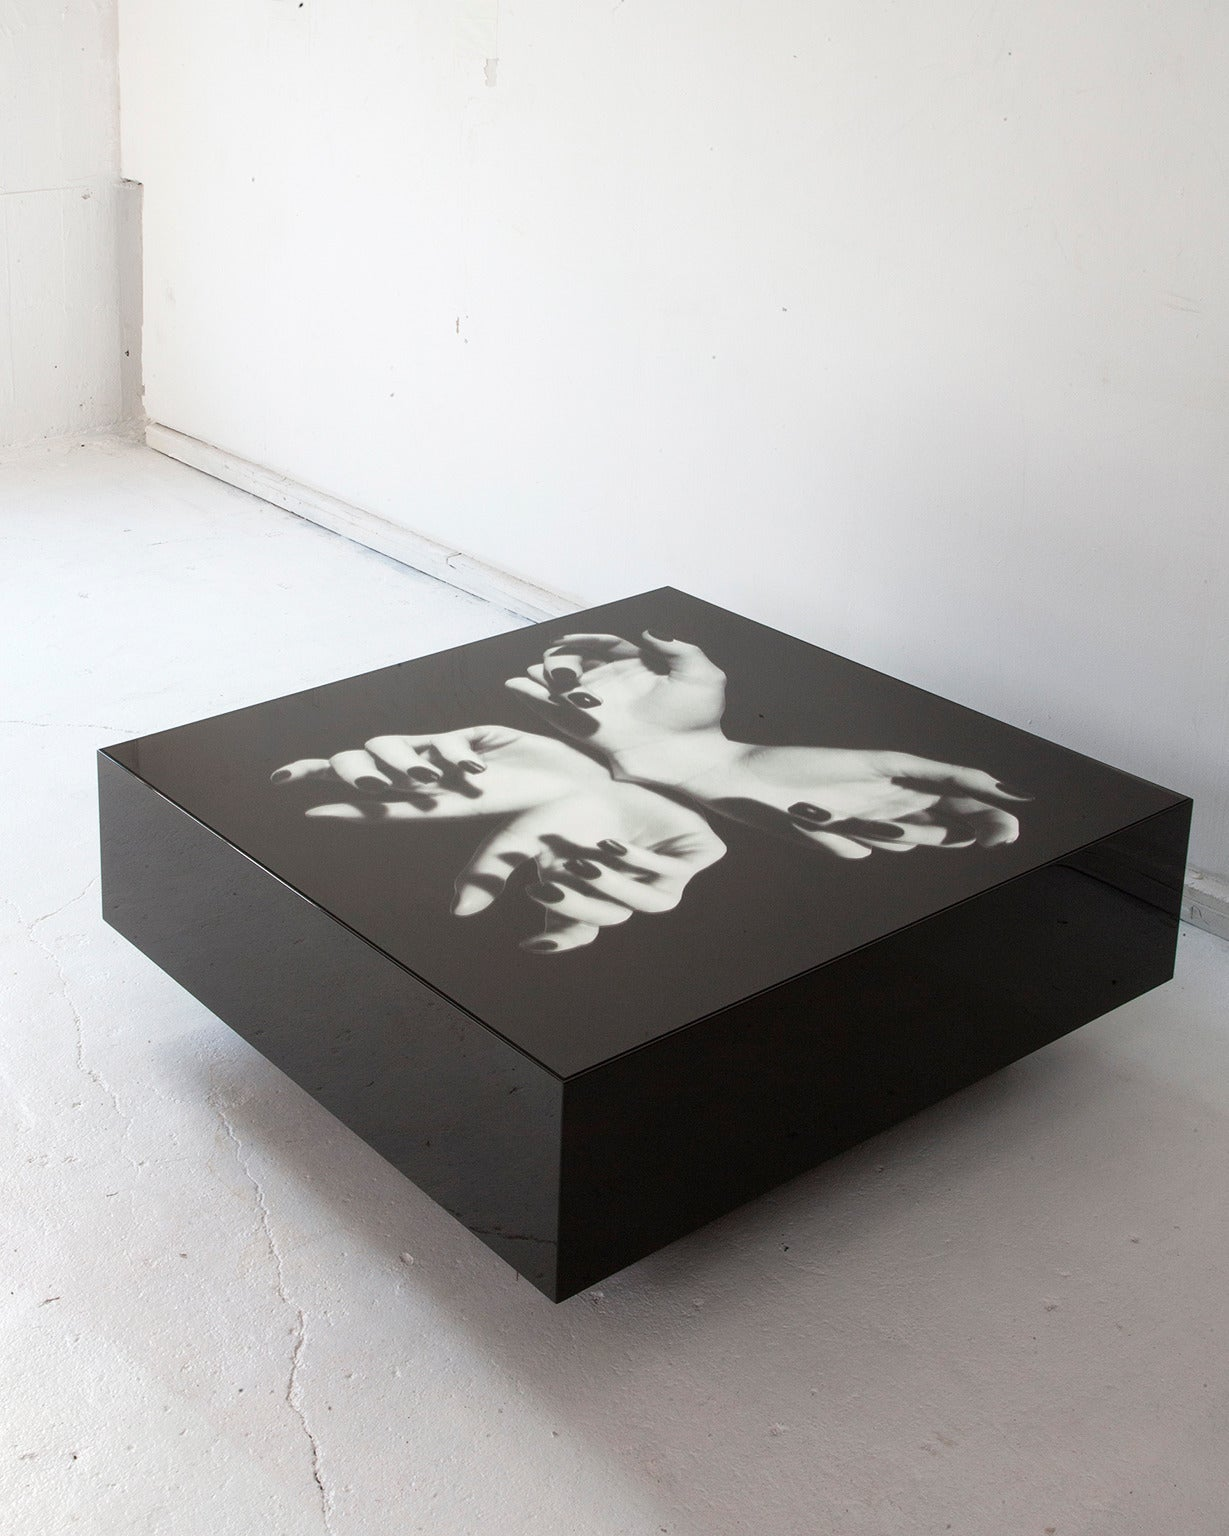 Cocktail table with black mirror top printed with an original digital collage by artist Gordon Magnin.  Shown in black. Measures: 36